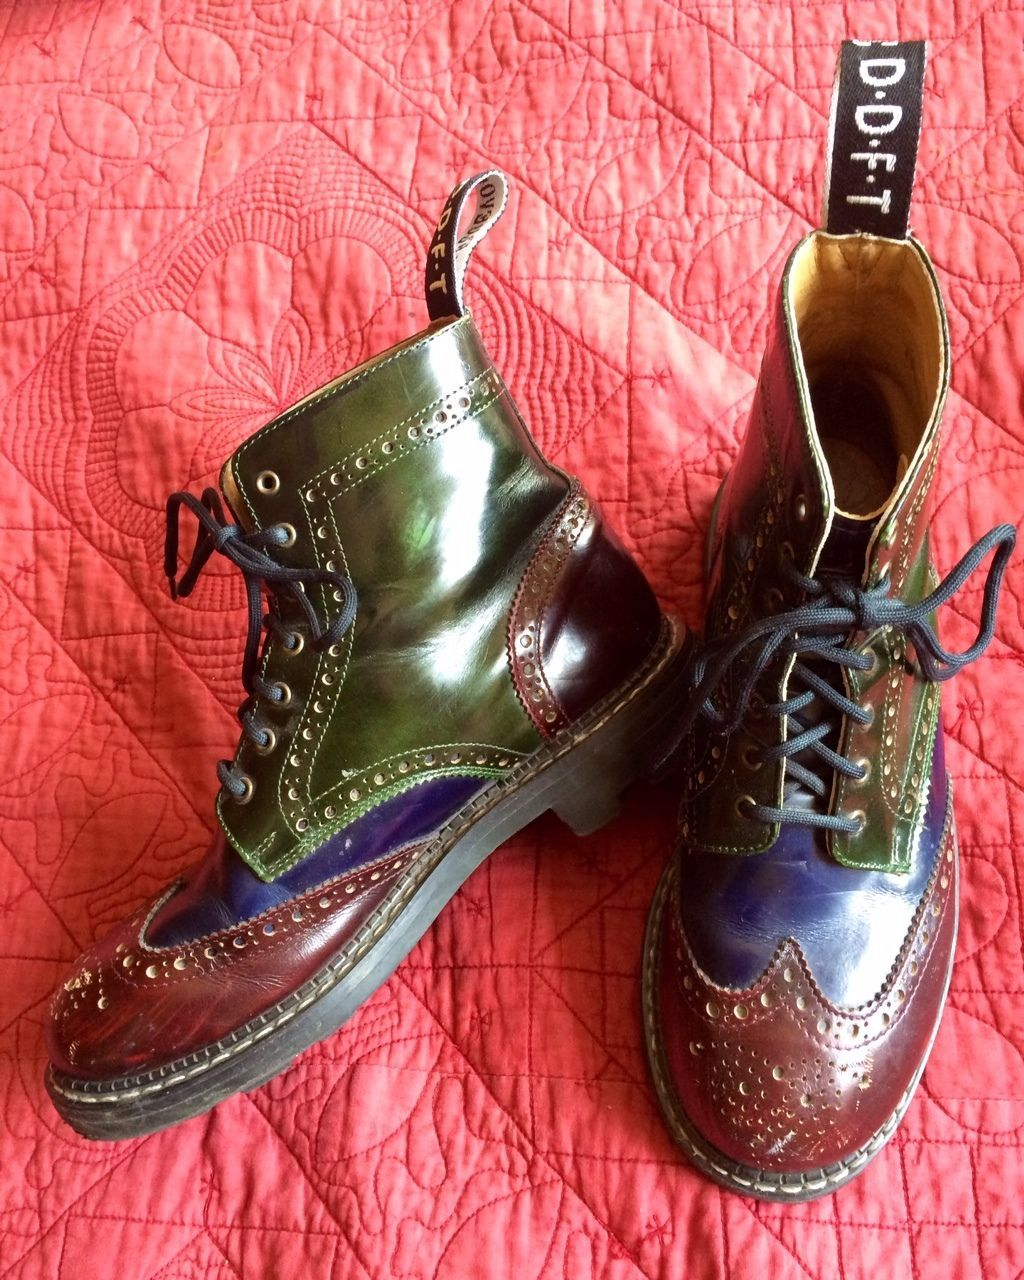 JOHN FLUEVOG DERBY SWIRL ANGEL Womens Oxblood Leather Wing Tip Boots UK 7